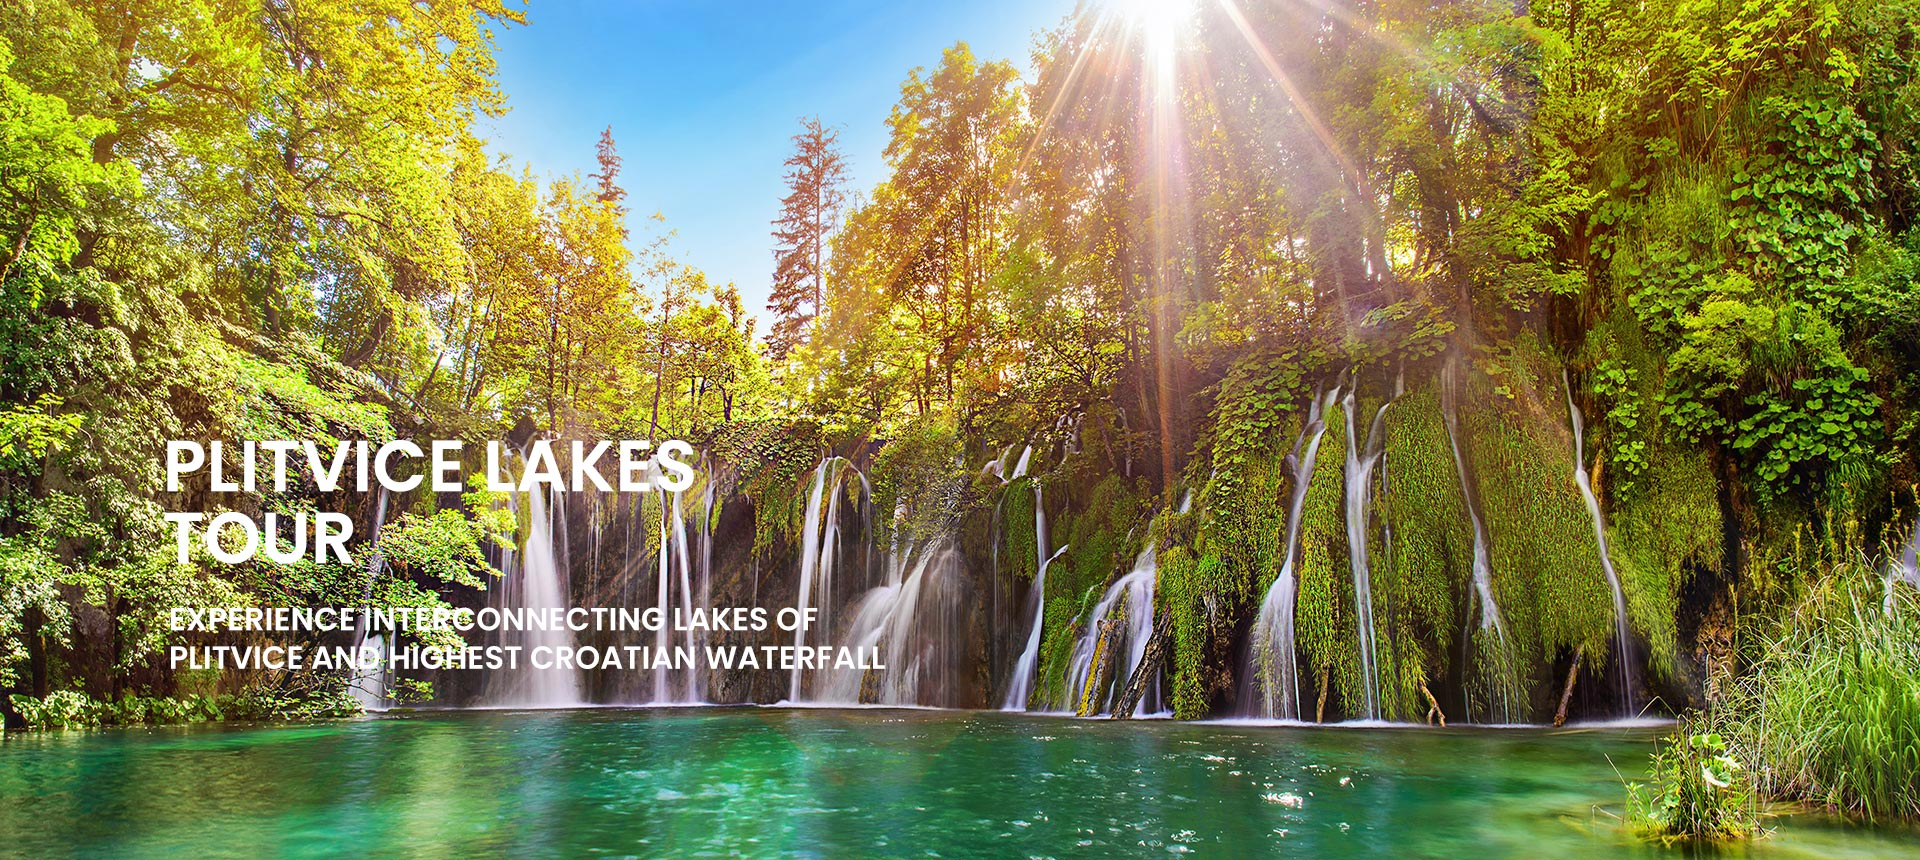 Plitvice lakes tour from Omiš